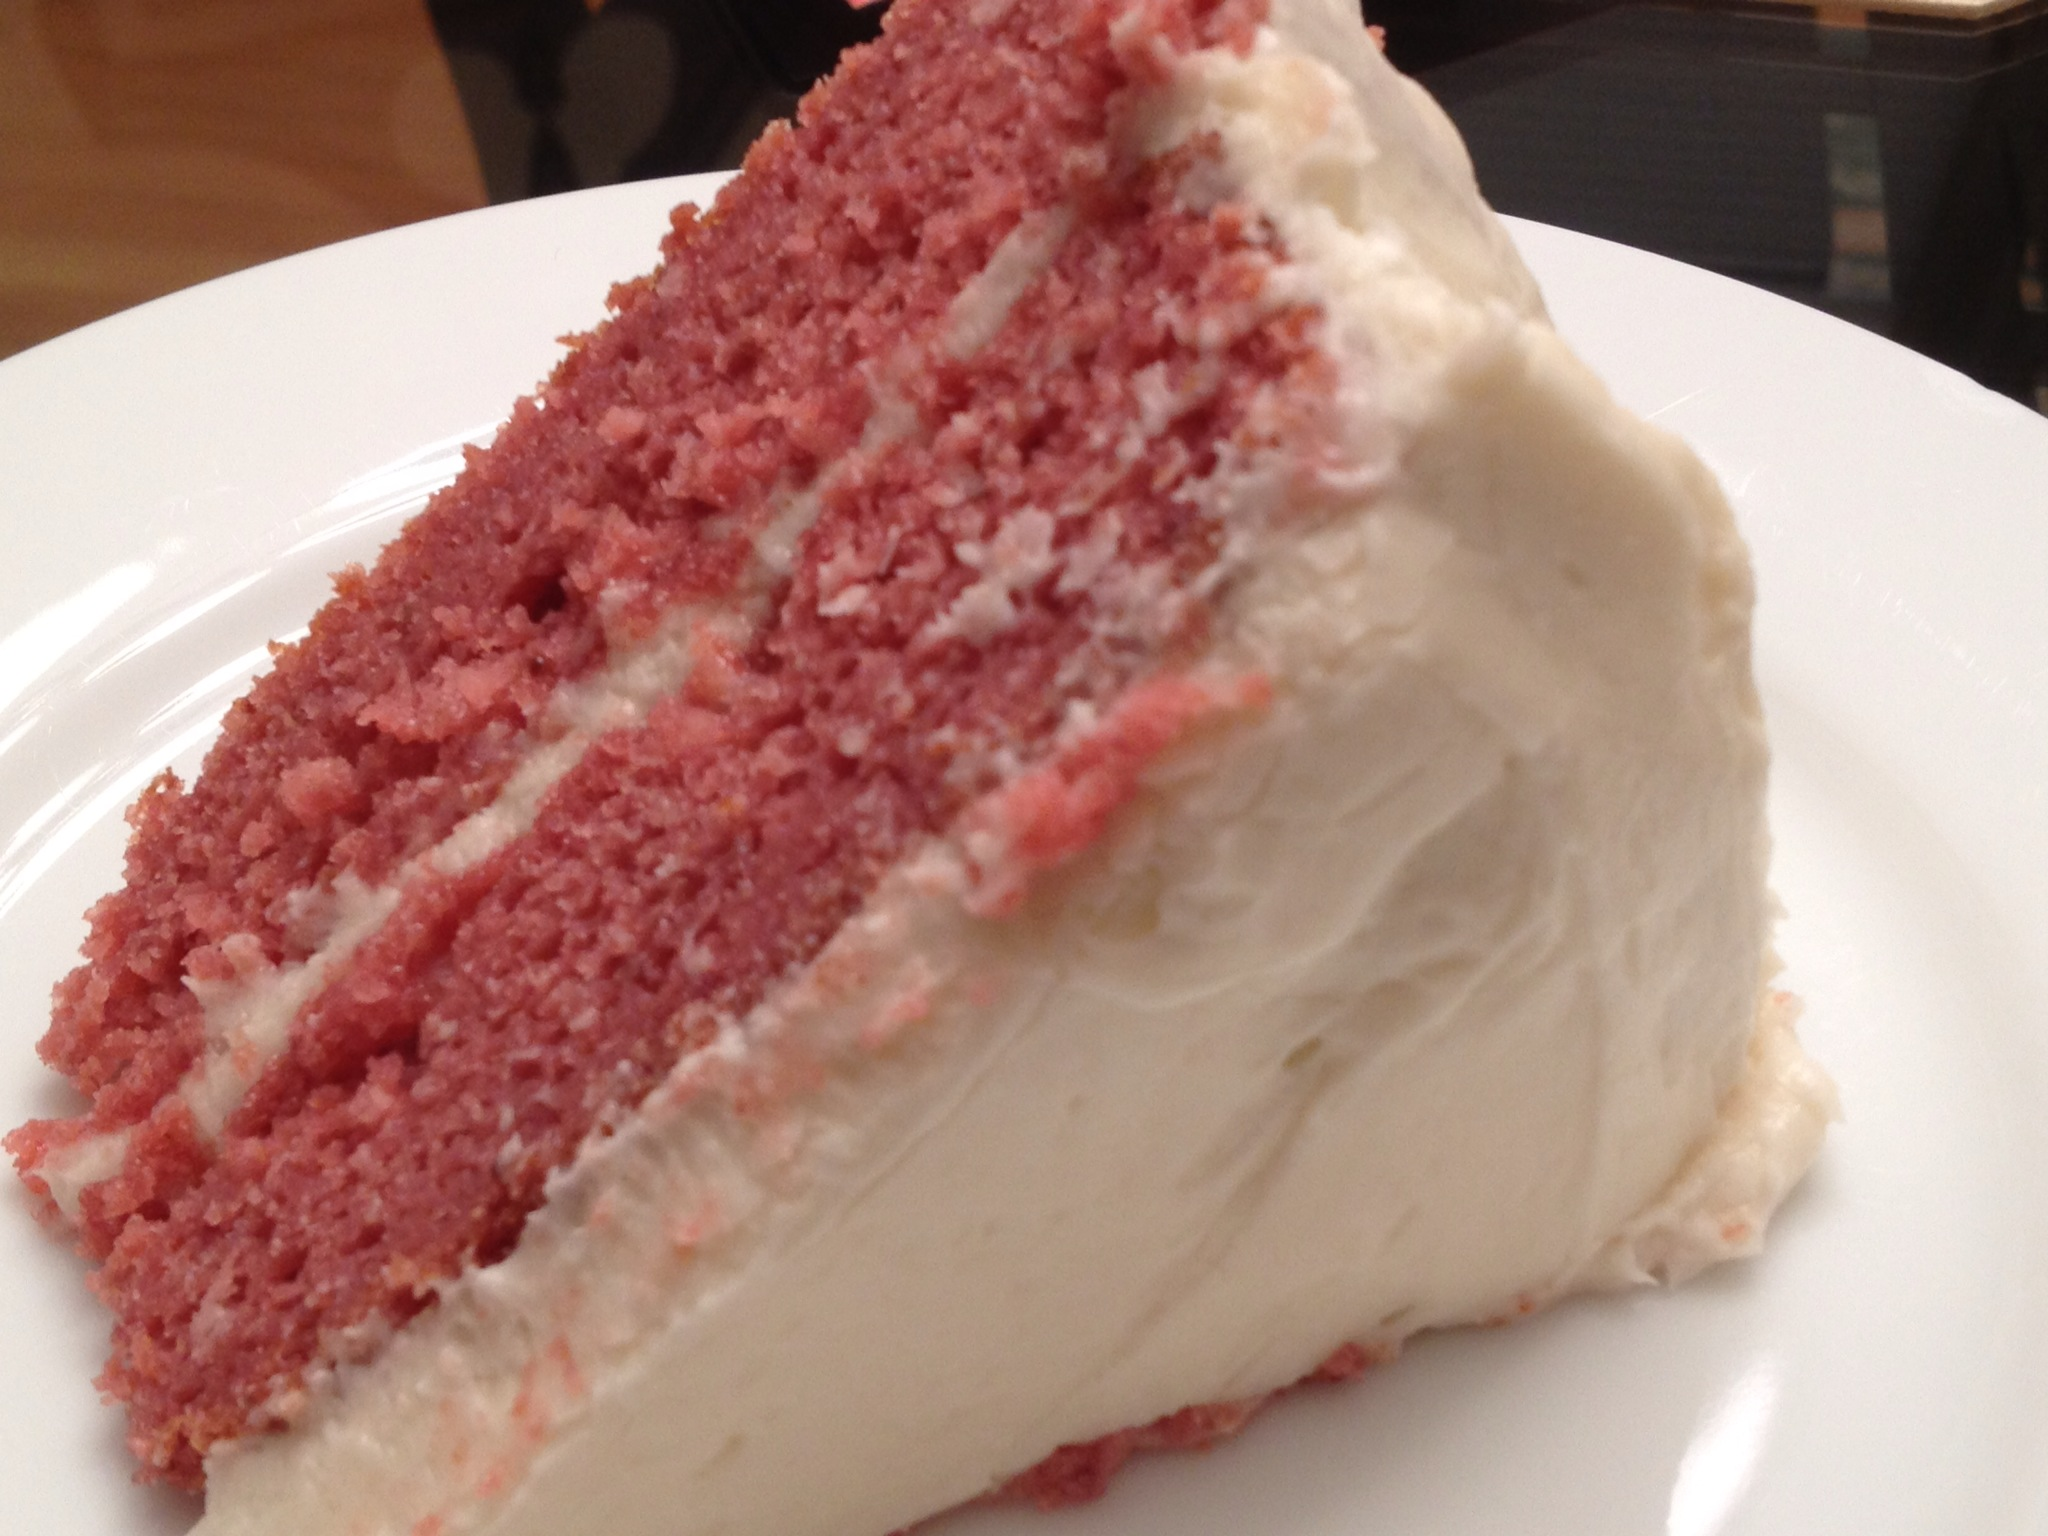 Strawberry Cake with Cream Cheese Frosting | Such a Little Baker